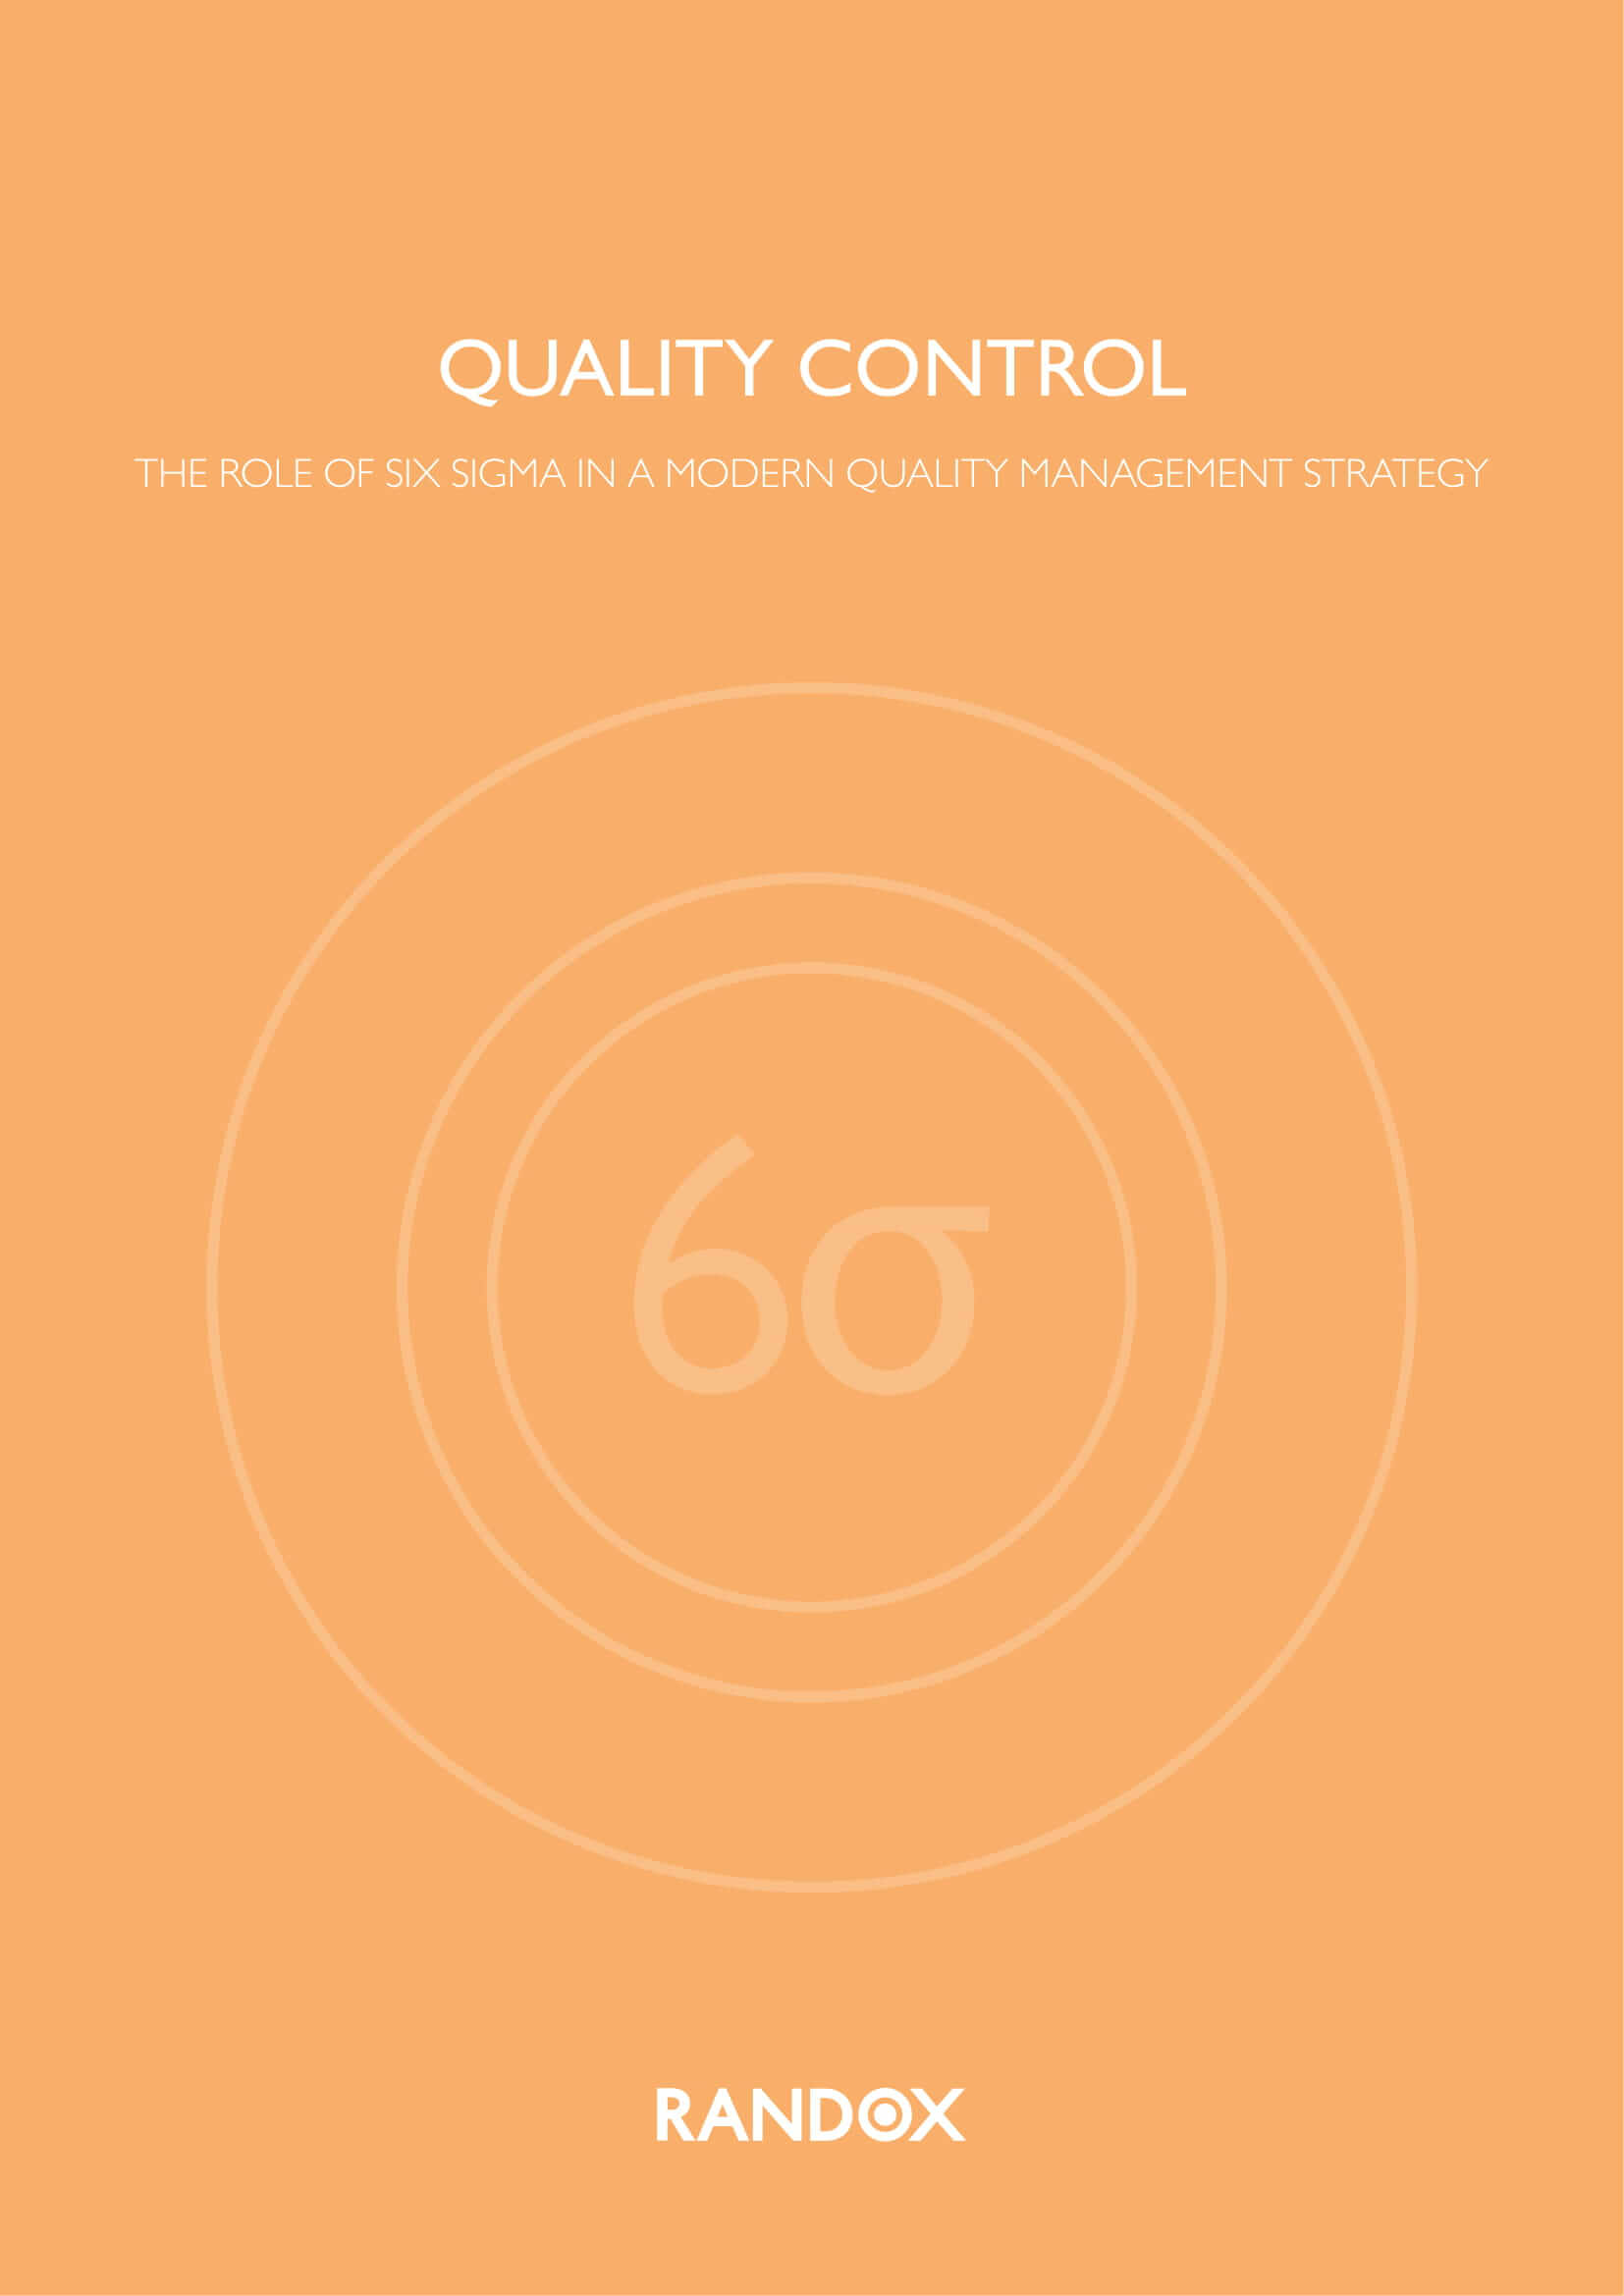 The Role of Six Sigma in a Modern-Quality Management Strategy - Download